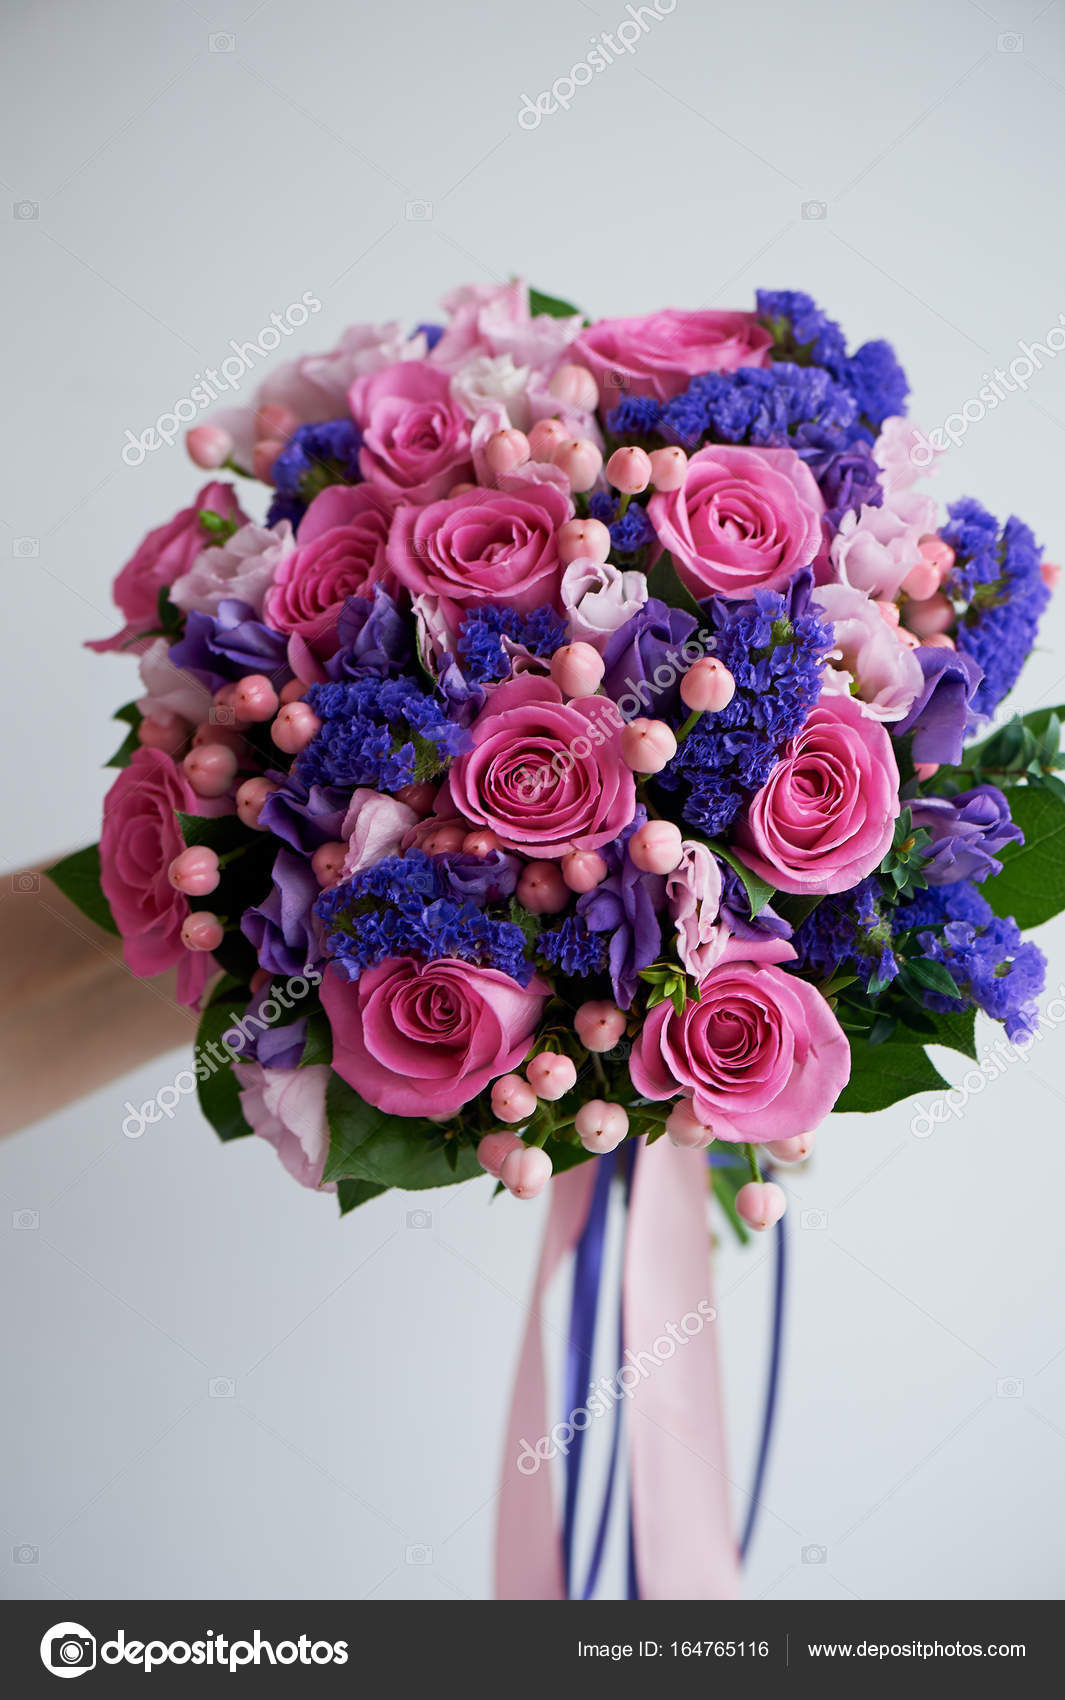 Wedding Bouquet In Pink And Purple Tonesautiful And Delicate